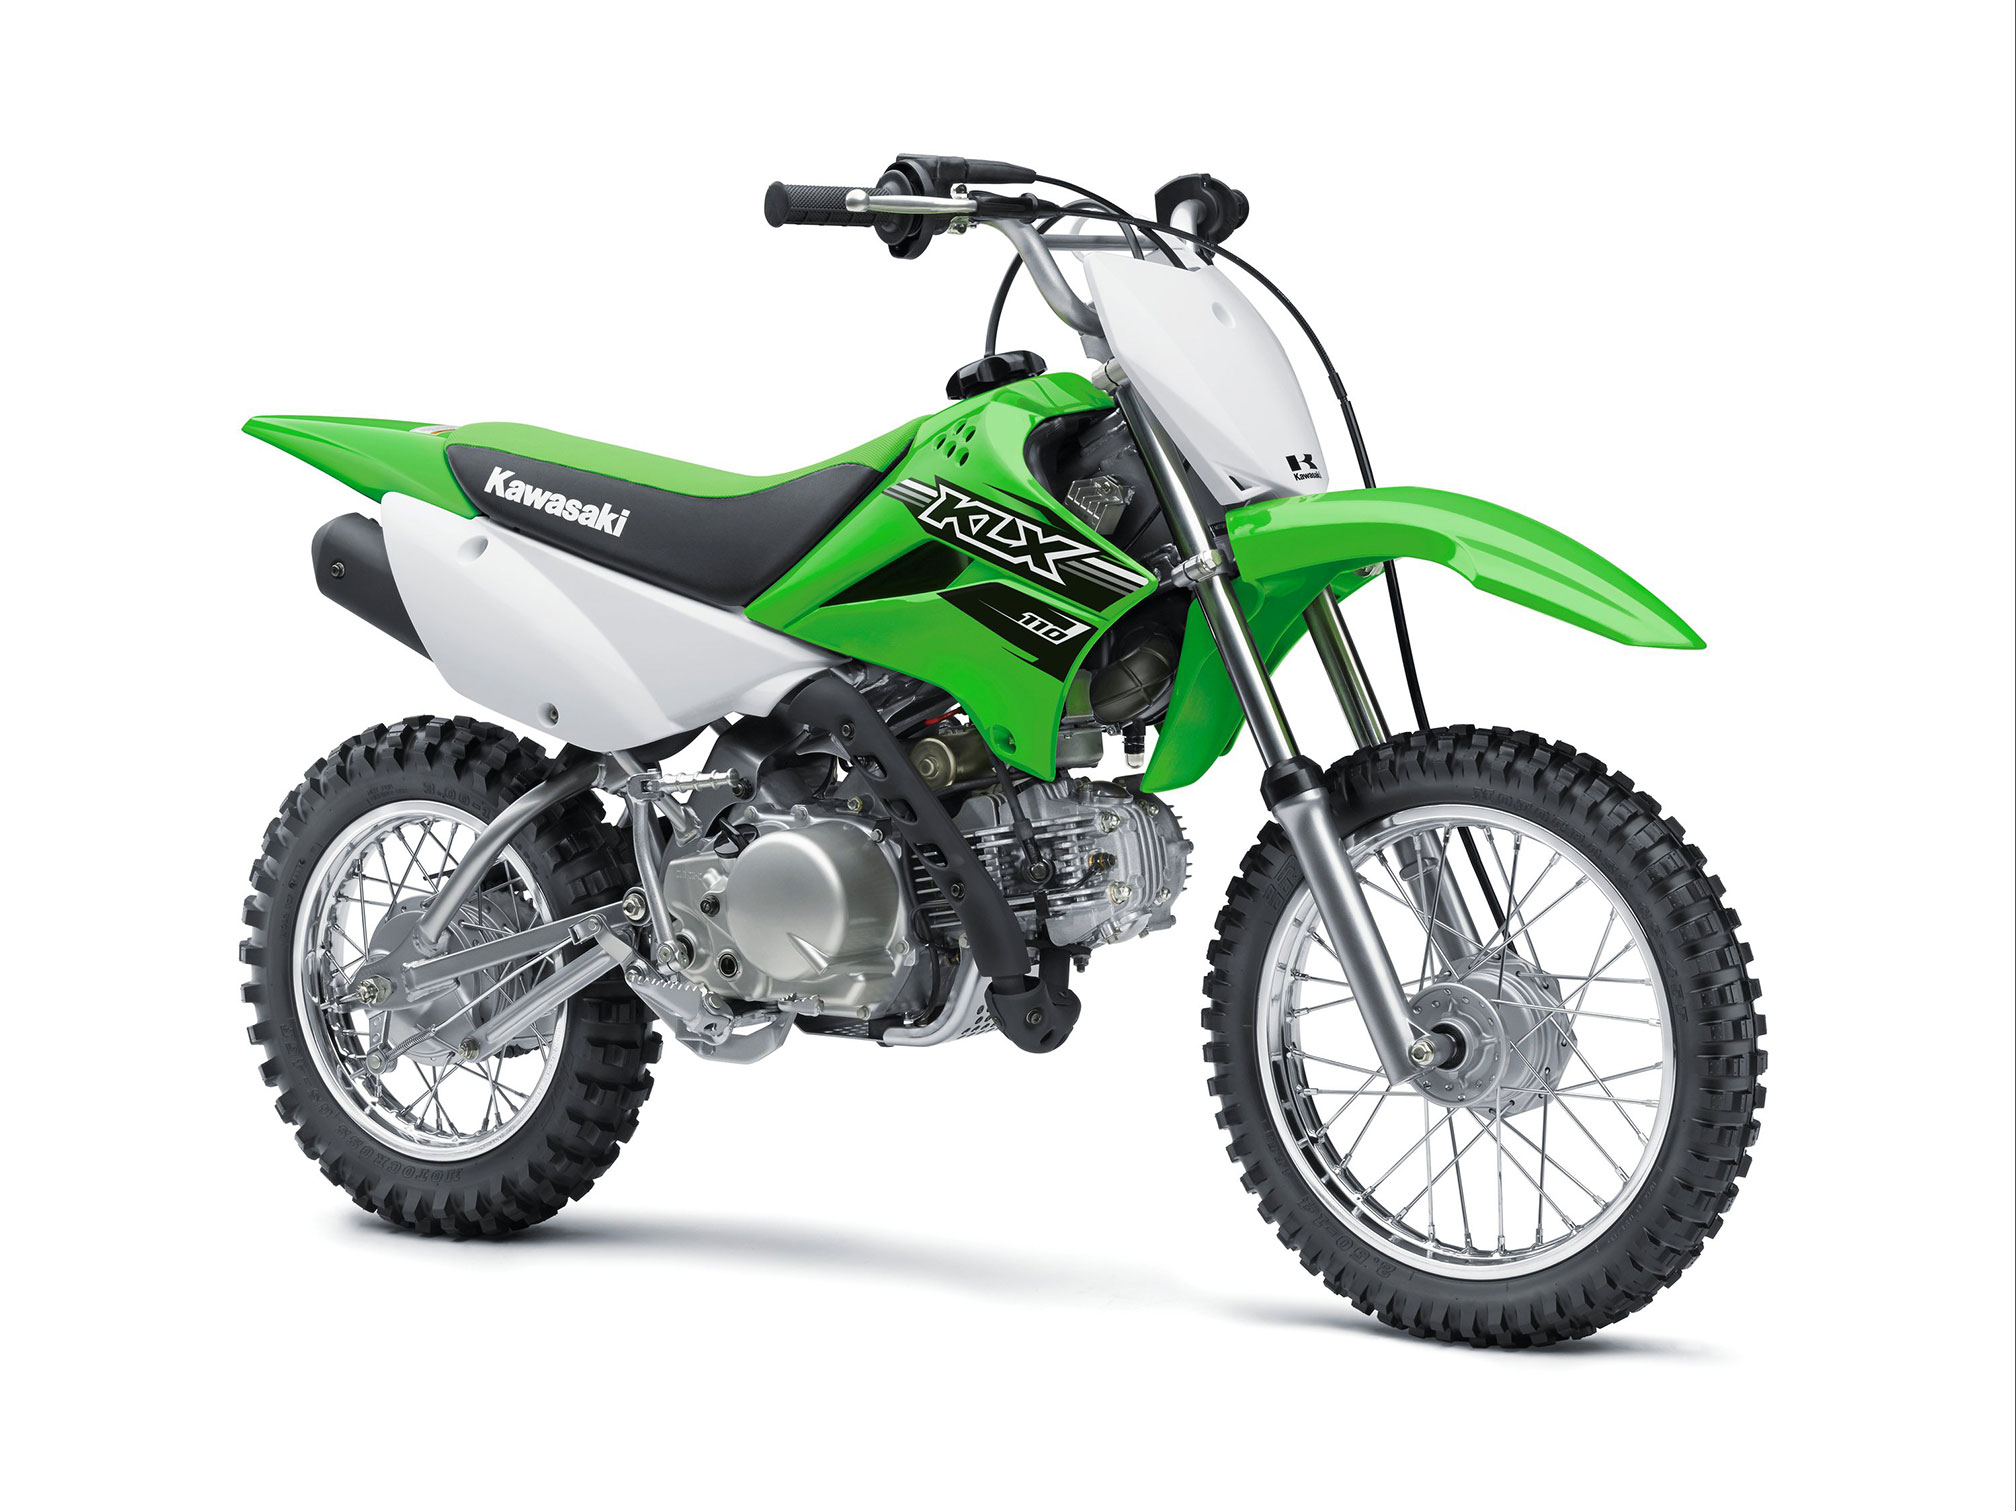 2016 Kawasaki KLX110 Review